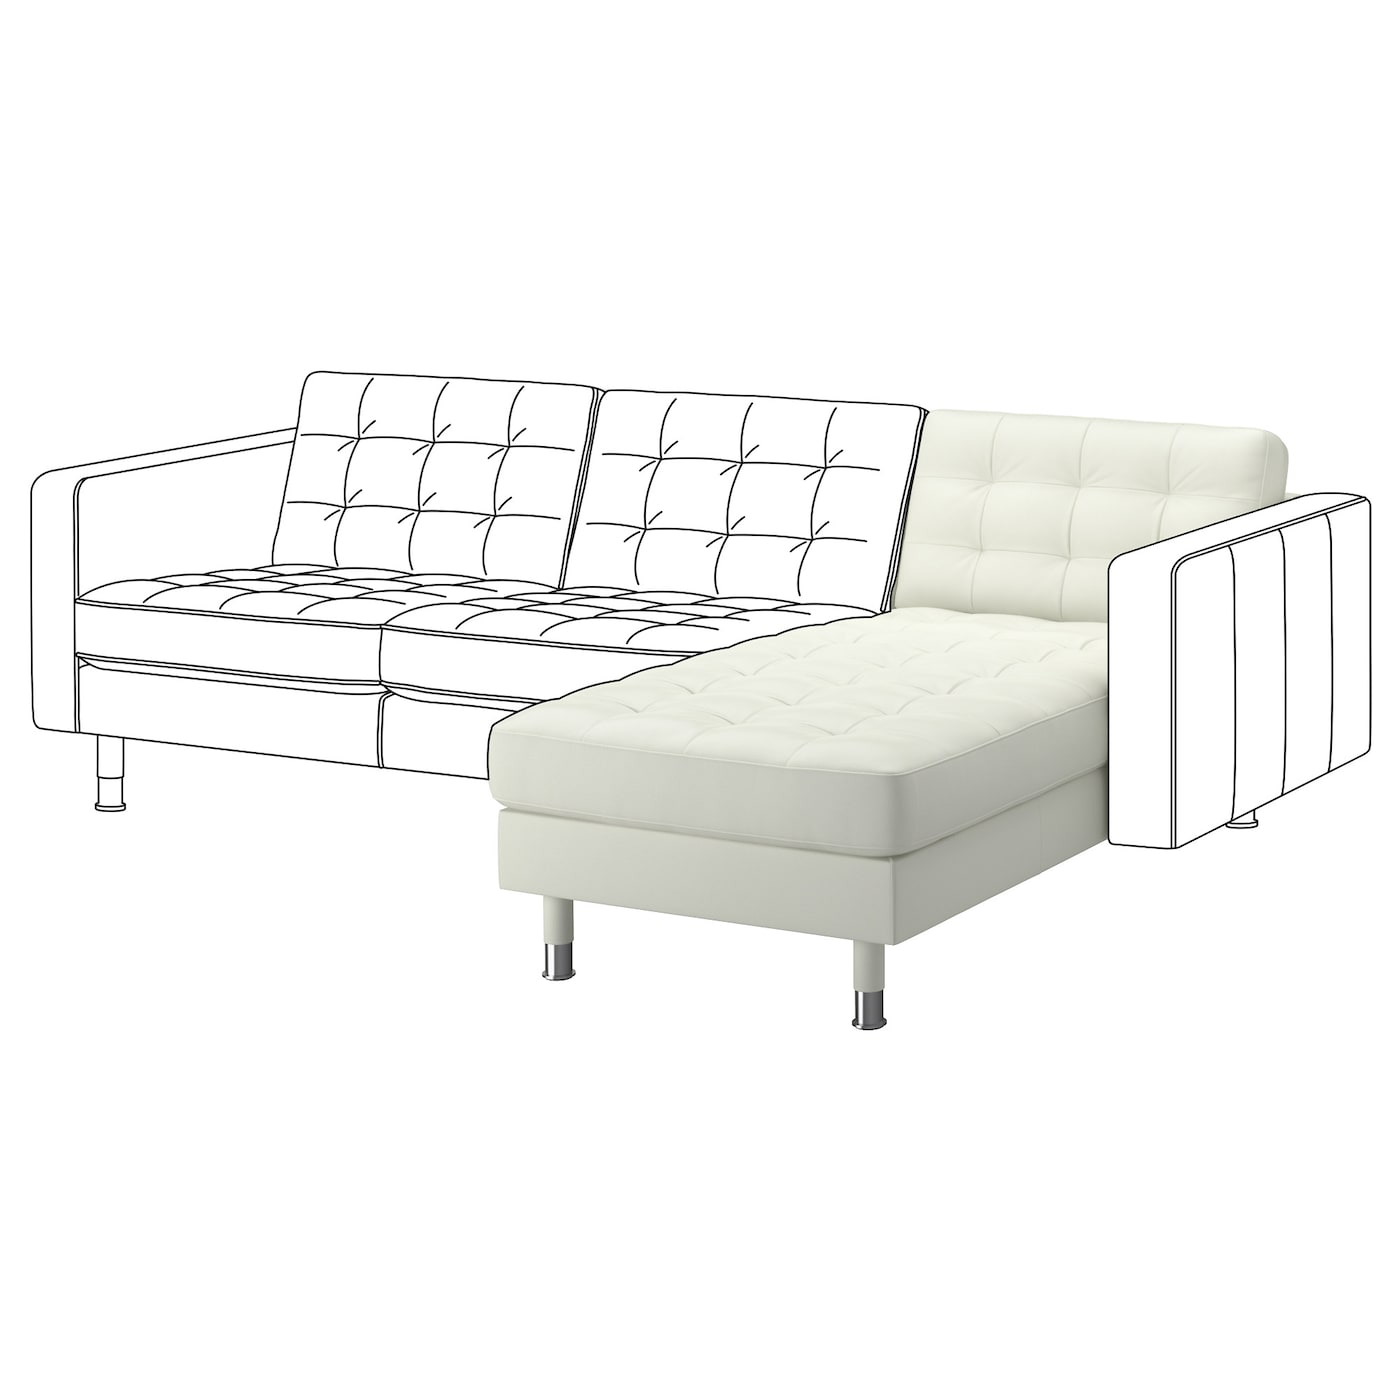 Landskrona chaise longue add on unit grann bomstad white for Chaise longue en toile pliante